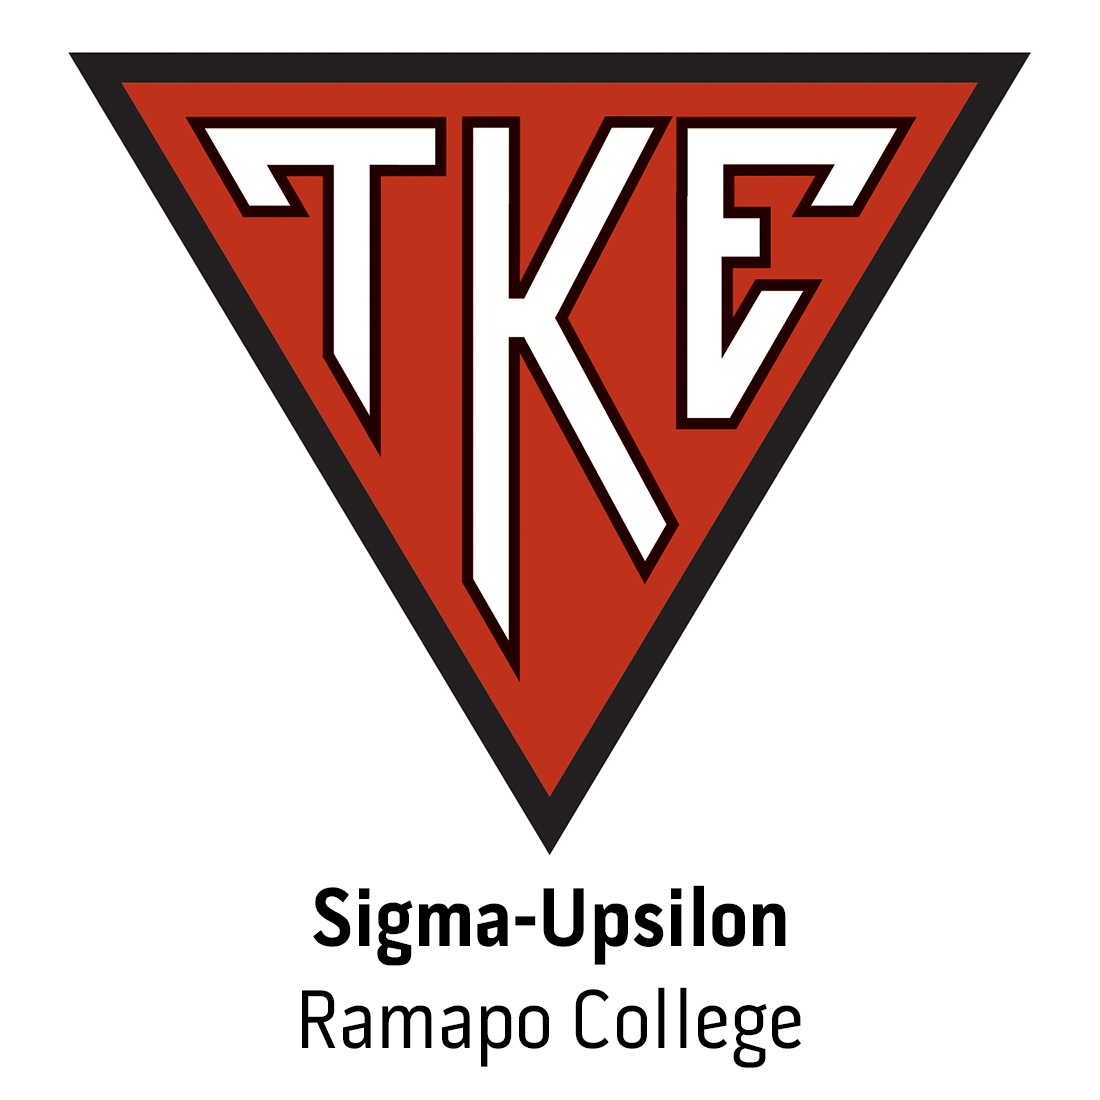 Sigma-Upsilon Chapter at Ramapo College of New Jersey